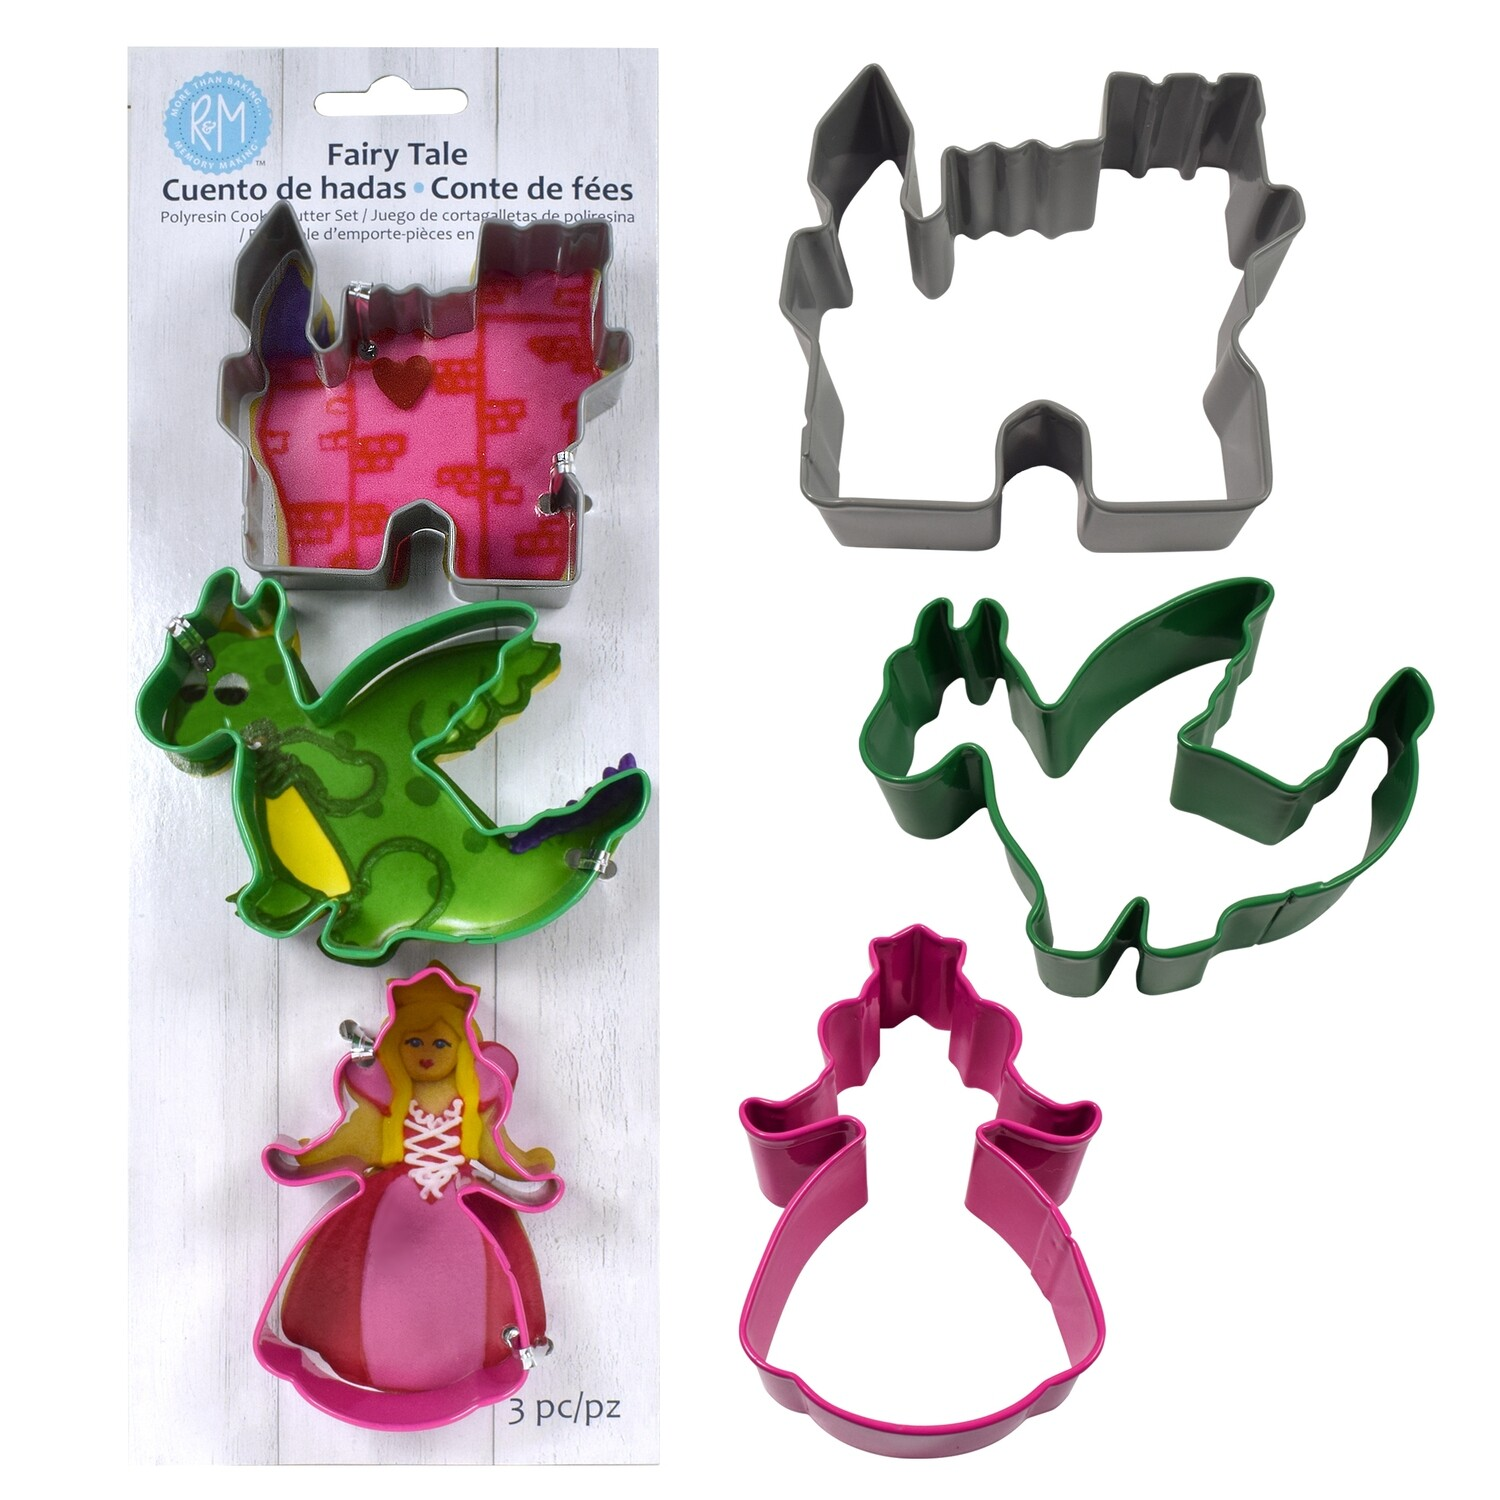 SALE!!! By AH -Set of 3 Cookie Cutters -FAIRYTALE MIX - Σετ 3 Κουπ πατ με Θέμα Παραμύθι